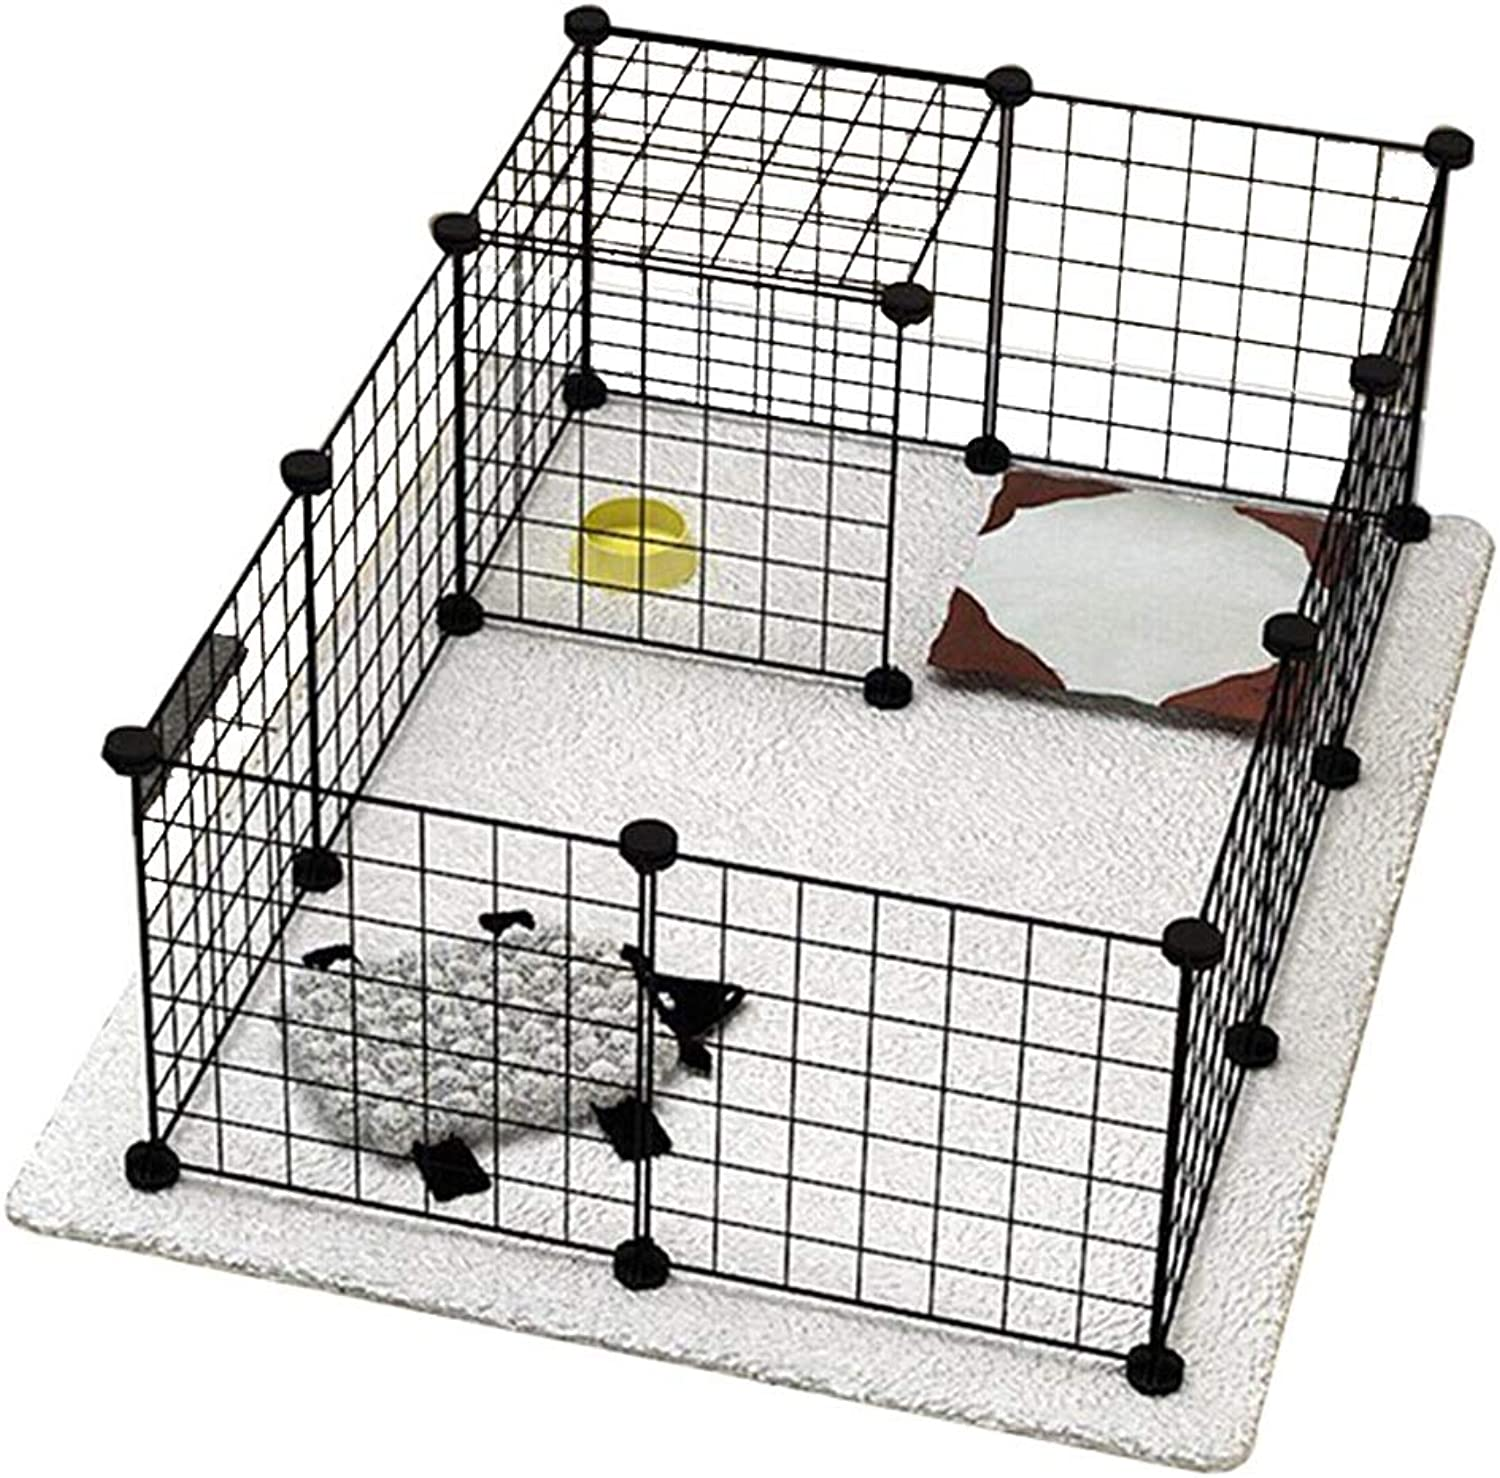 Foldable Metal Pet Carrier Expandable Metal Playpen Cage Pet Dog Pen Puppy Cat Rabbit Foldable Playpen Indoor Outdoor Enclosure Run Cage (Size   6 pieces)